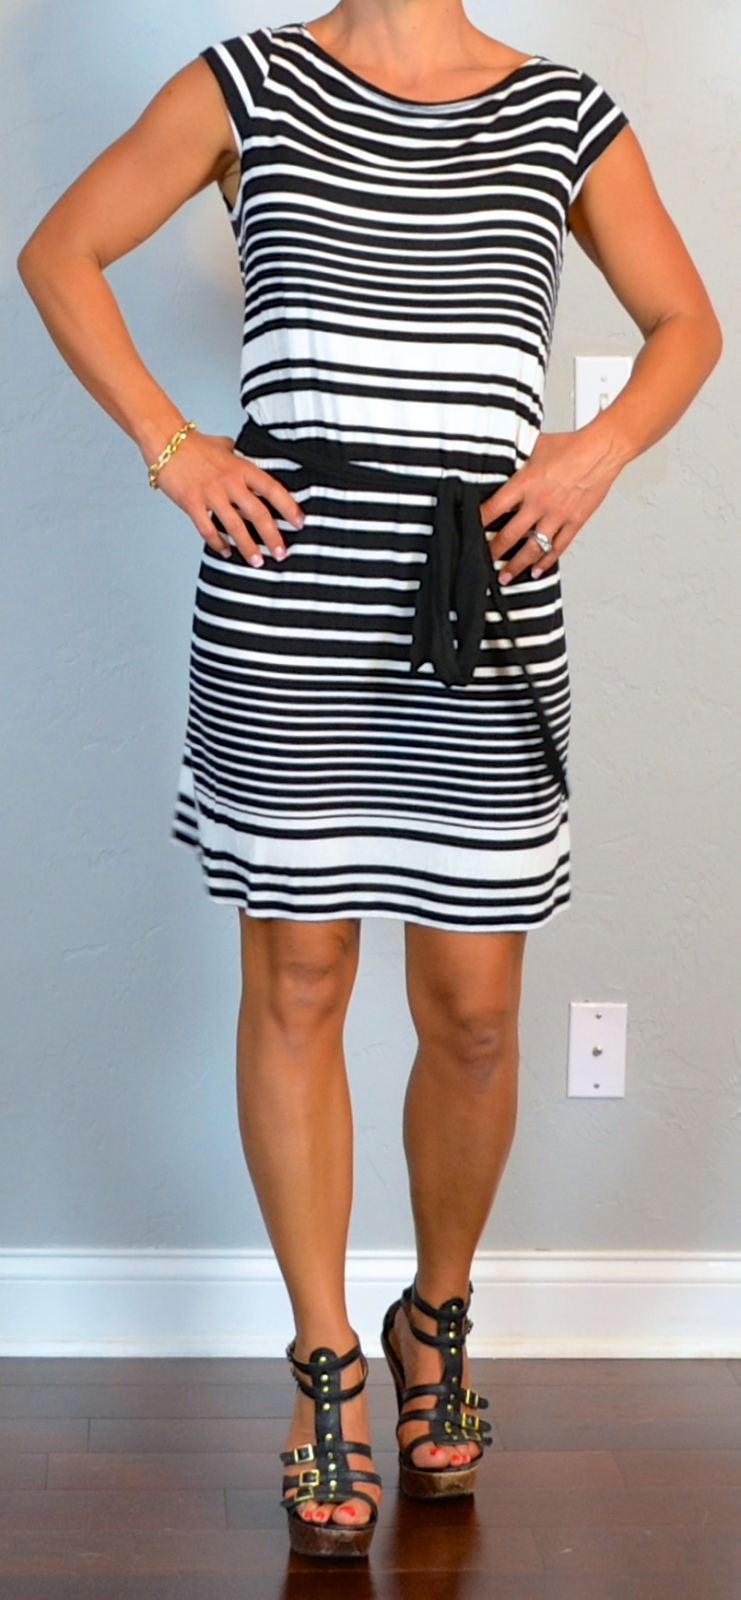 Outfit Post Black And White Striped Dress Gladiator Heels